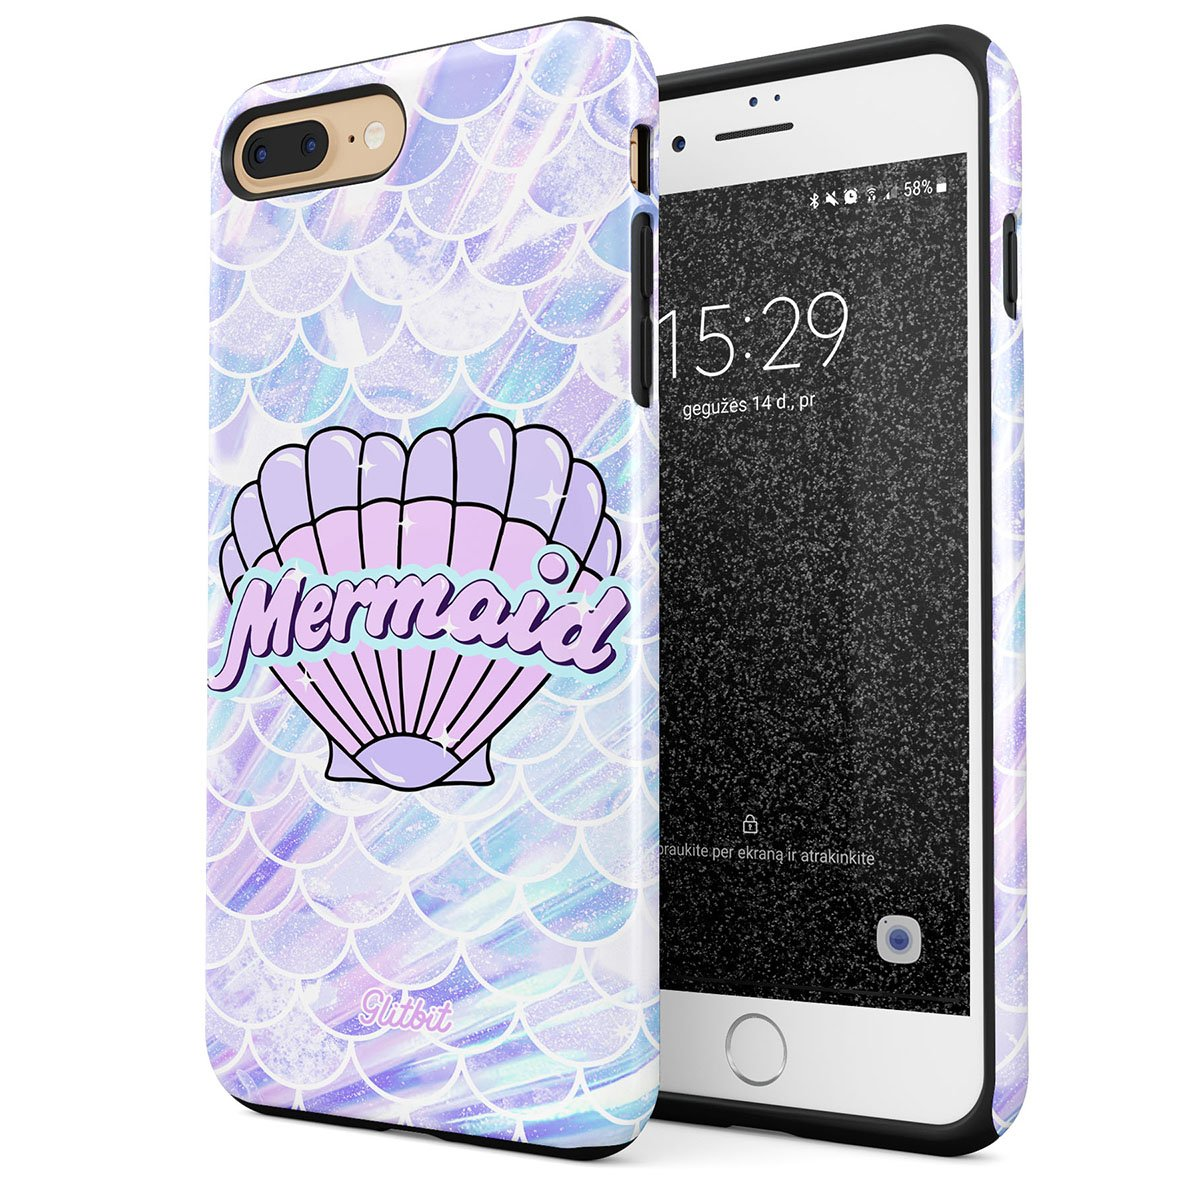 Glitbit Compatible with iPhone 7 Plus iPhone 8 Plus Case Mermaid Seashell Paua Abalone Queen Princess of The Ocean Pastel Purple Aesthetic Shockproof Dual Layer Hard Shell + Silicone Protective Cover by Glitbit